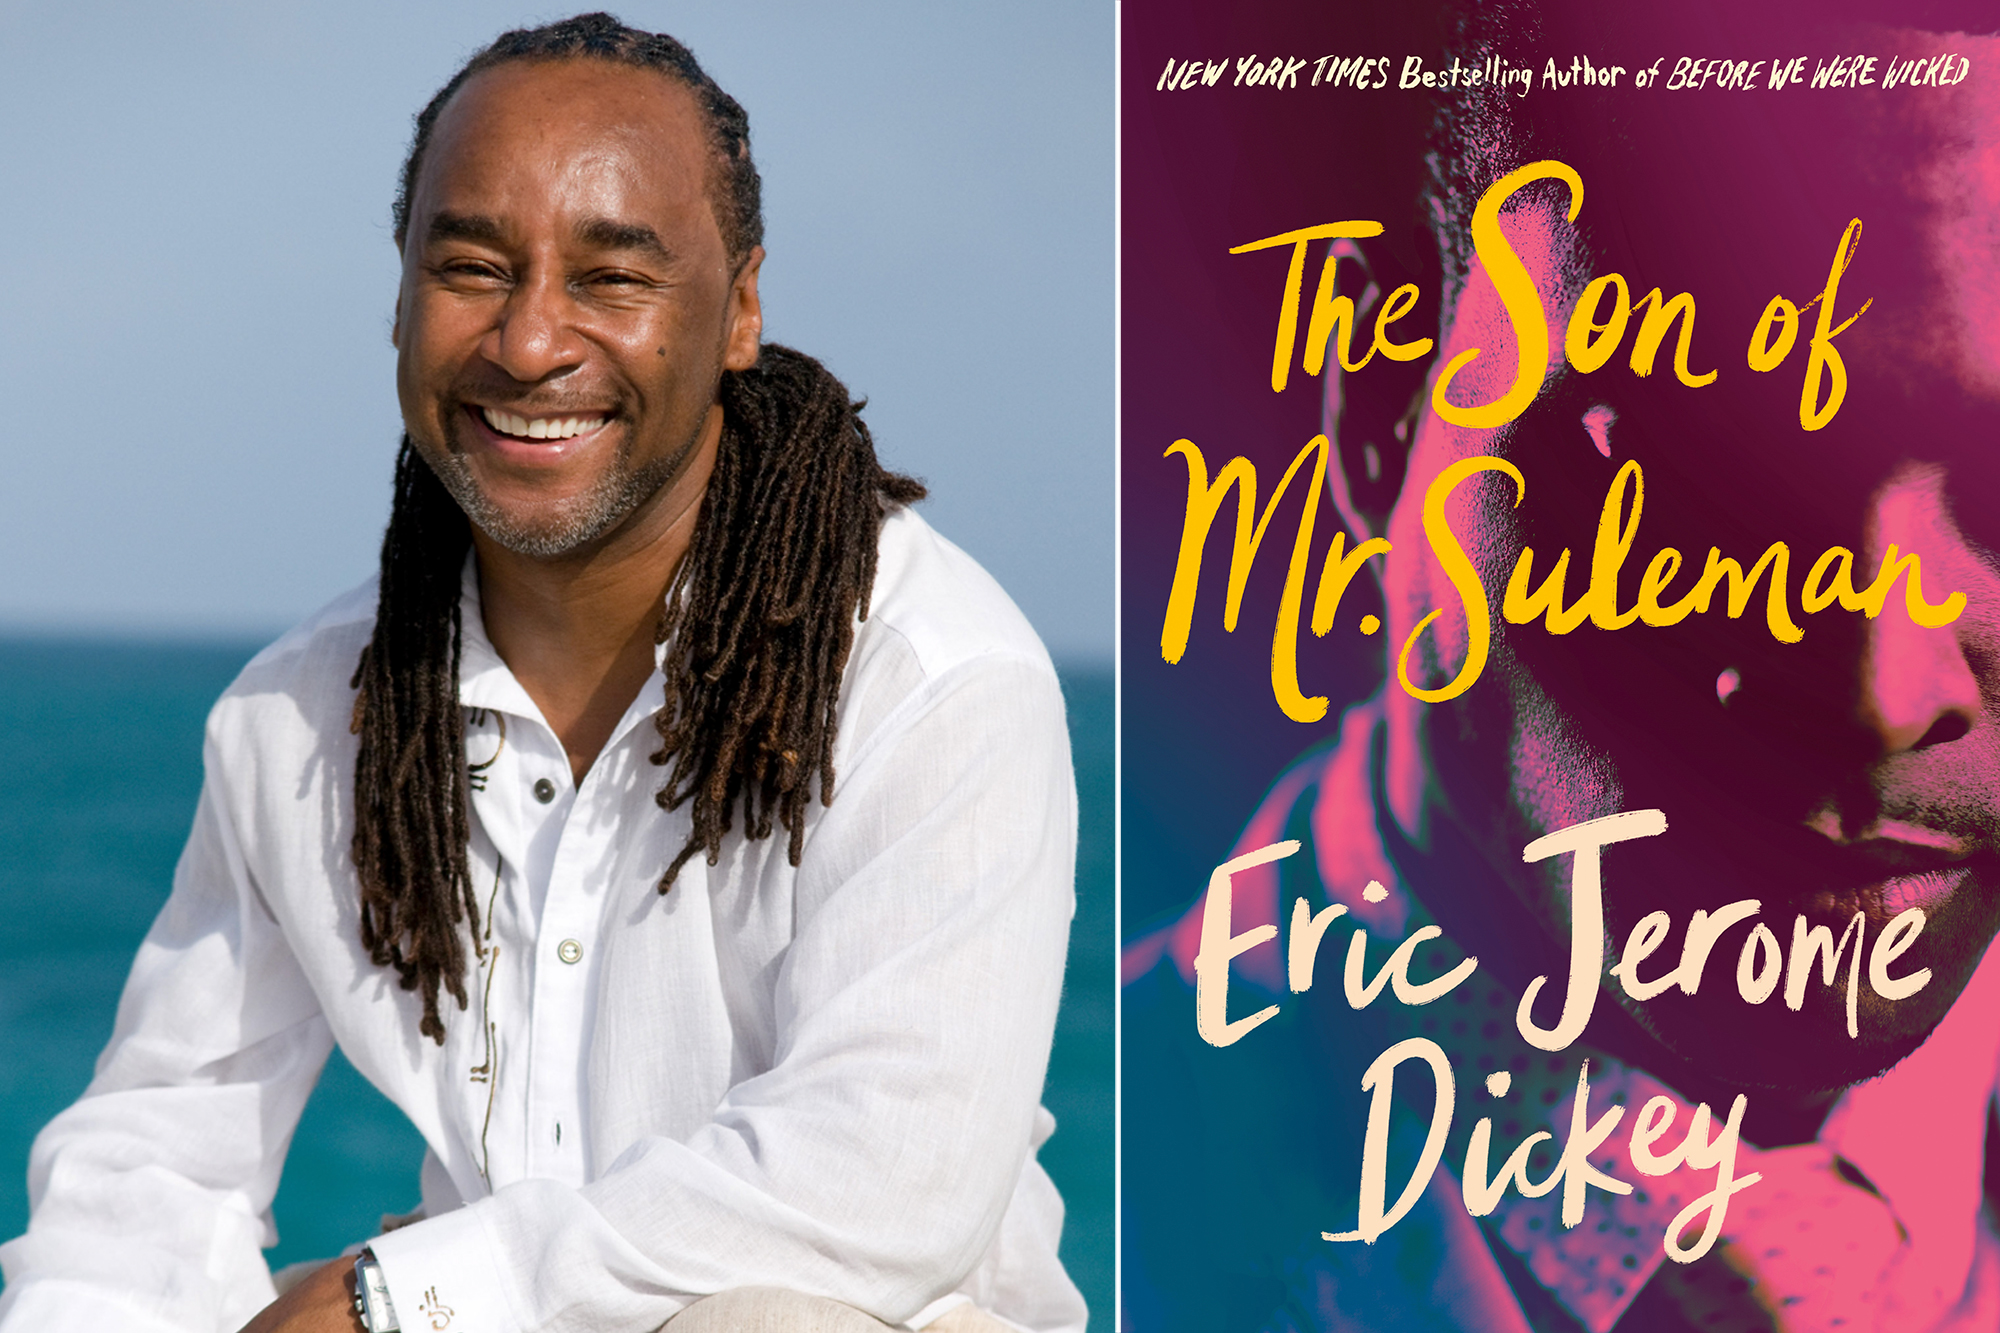 Eric Jerome Dickey, Son of Mr. Suleman